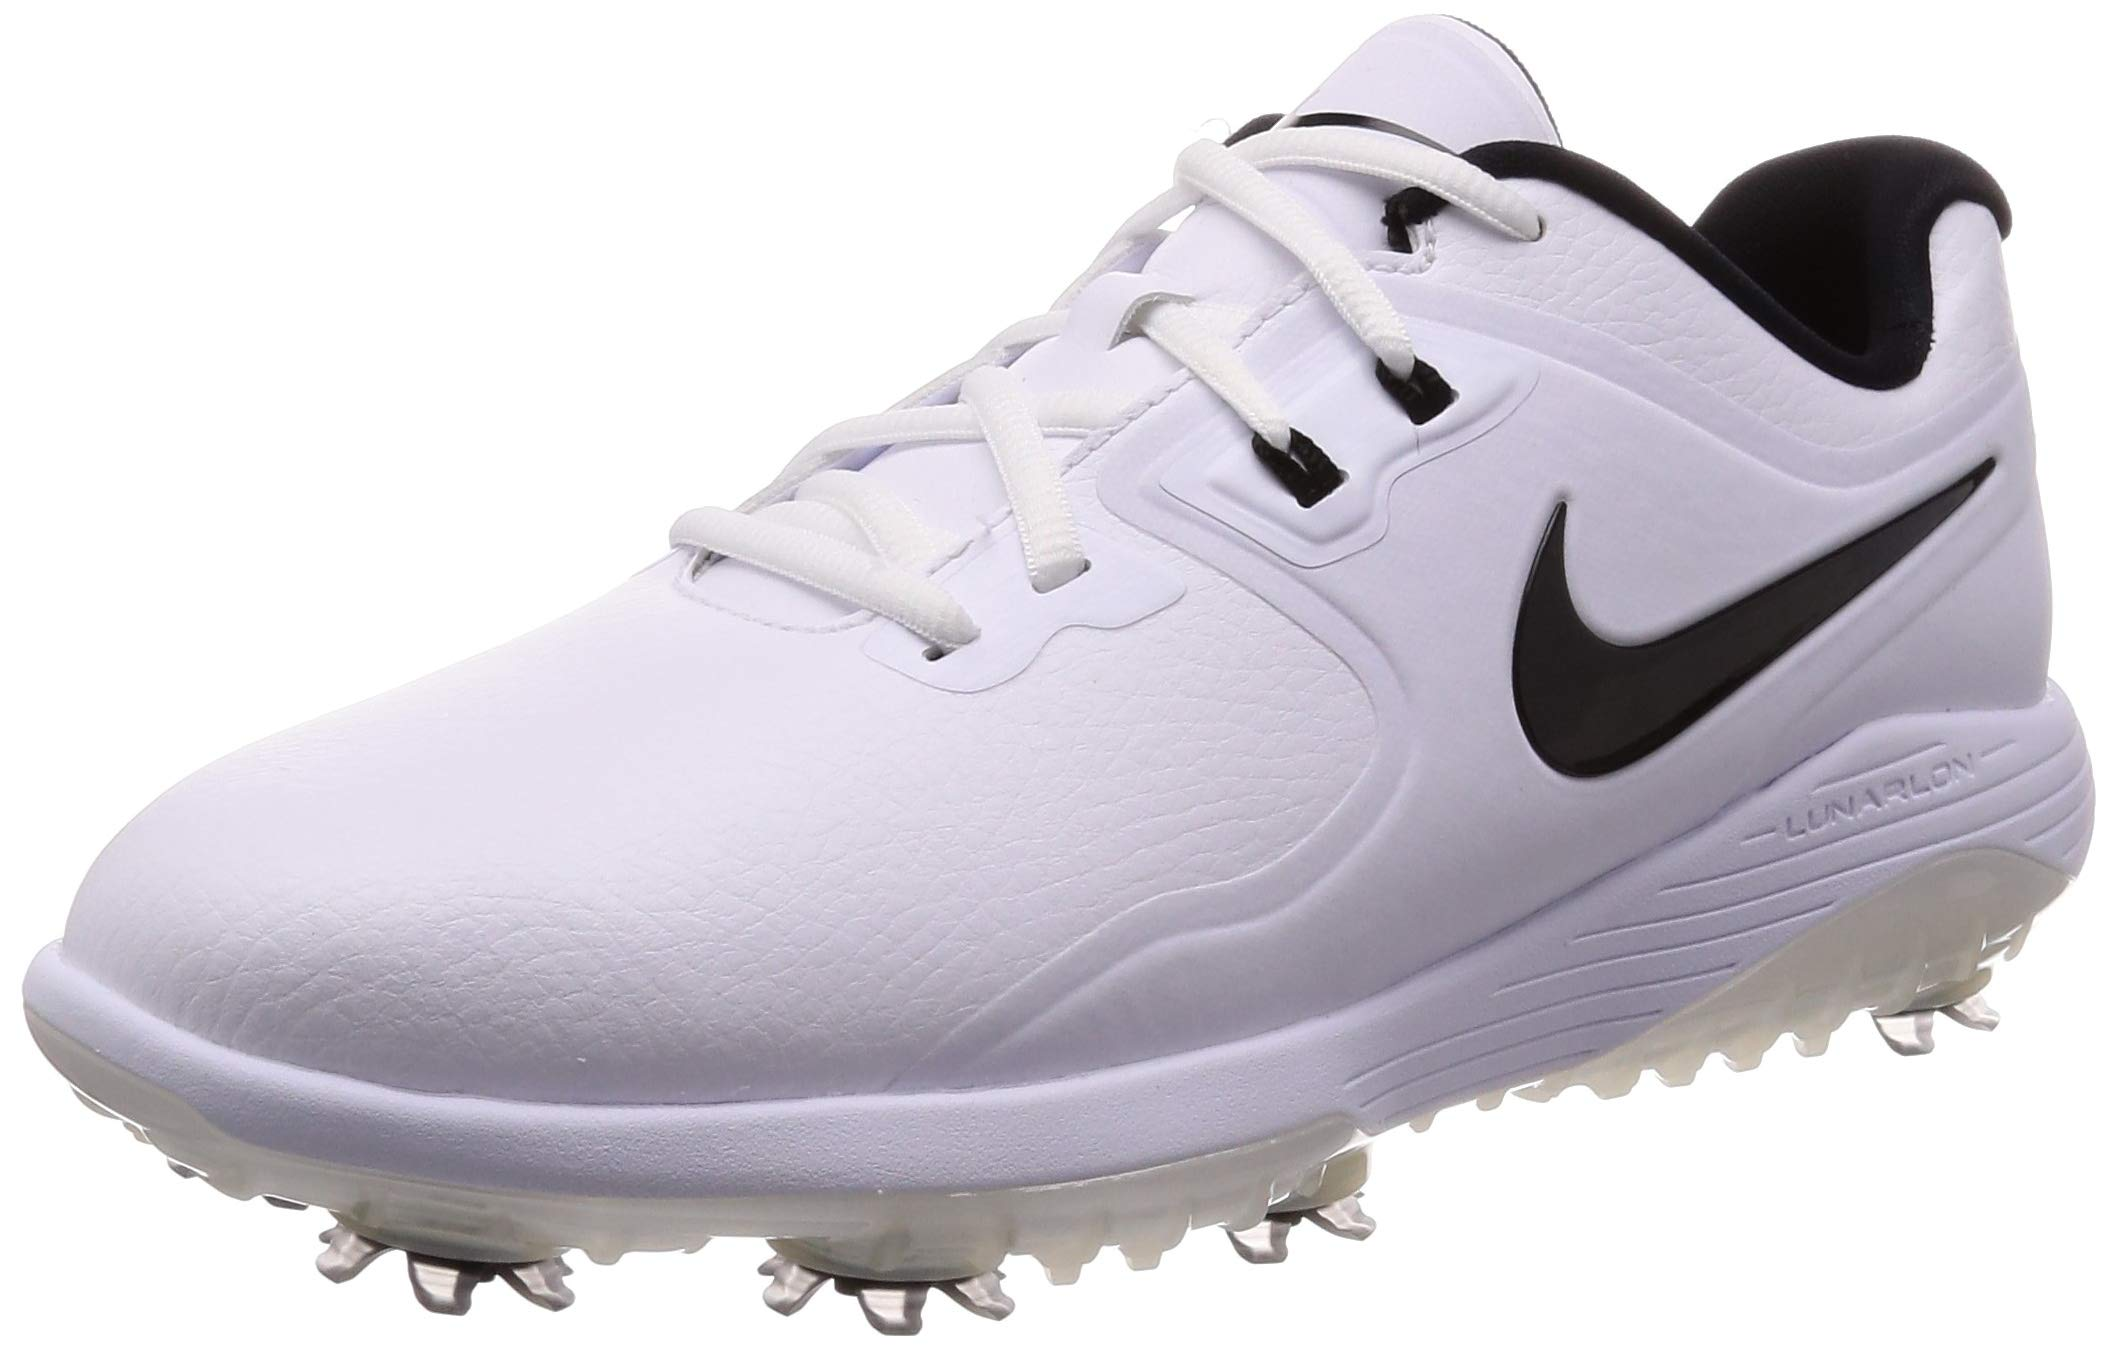 Nike Men S Vapor Pro Golf Shoes Buy Online In Bahamas At Desertcart